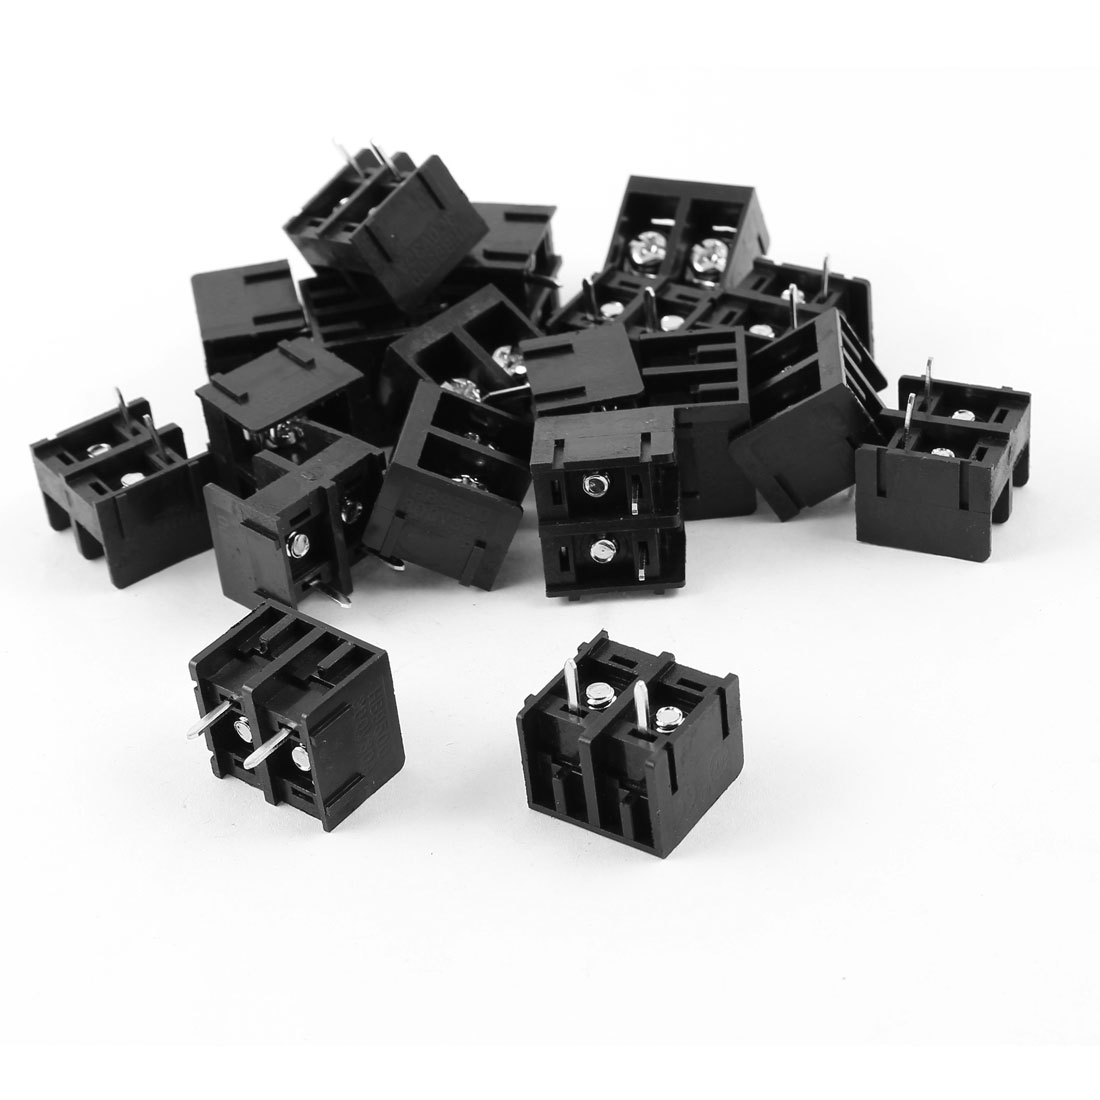 20pcs 2 Pole 9.5mm Spacing 2 Position 300V 30A Screw Terminal Block